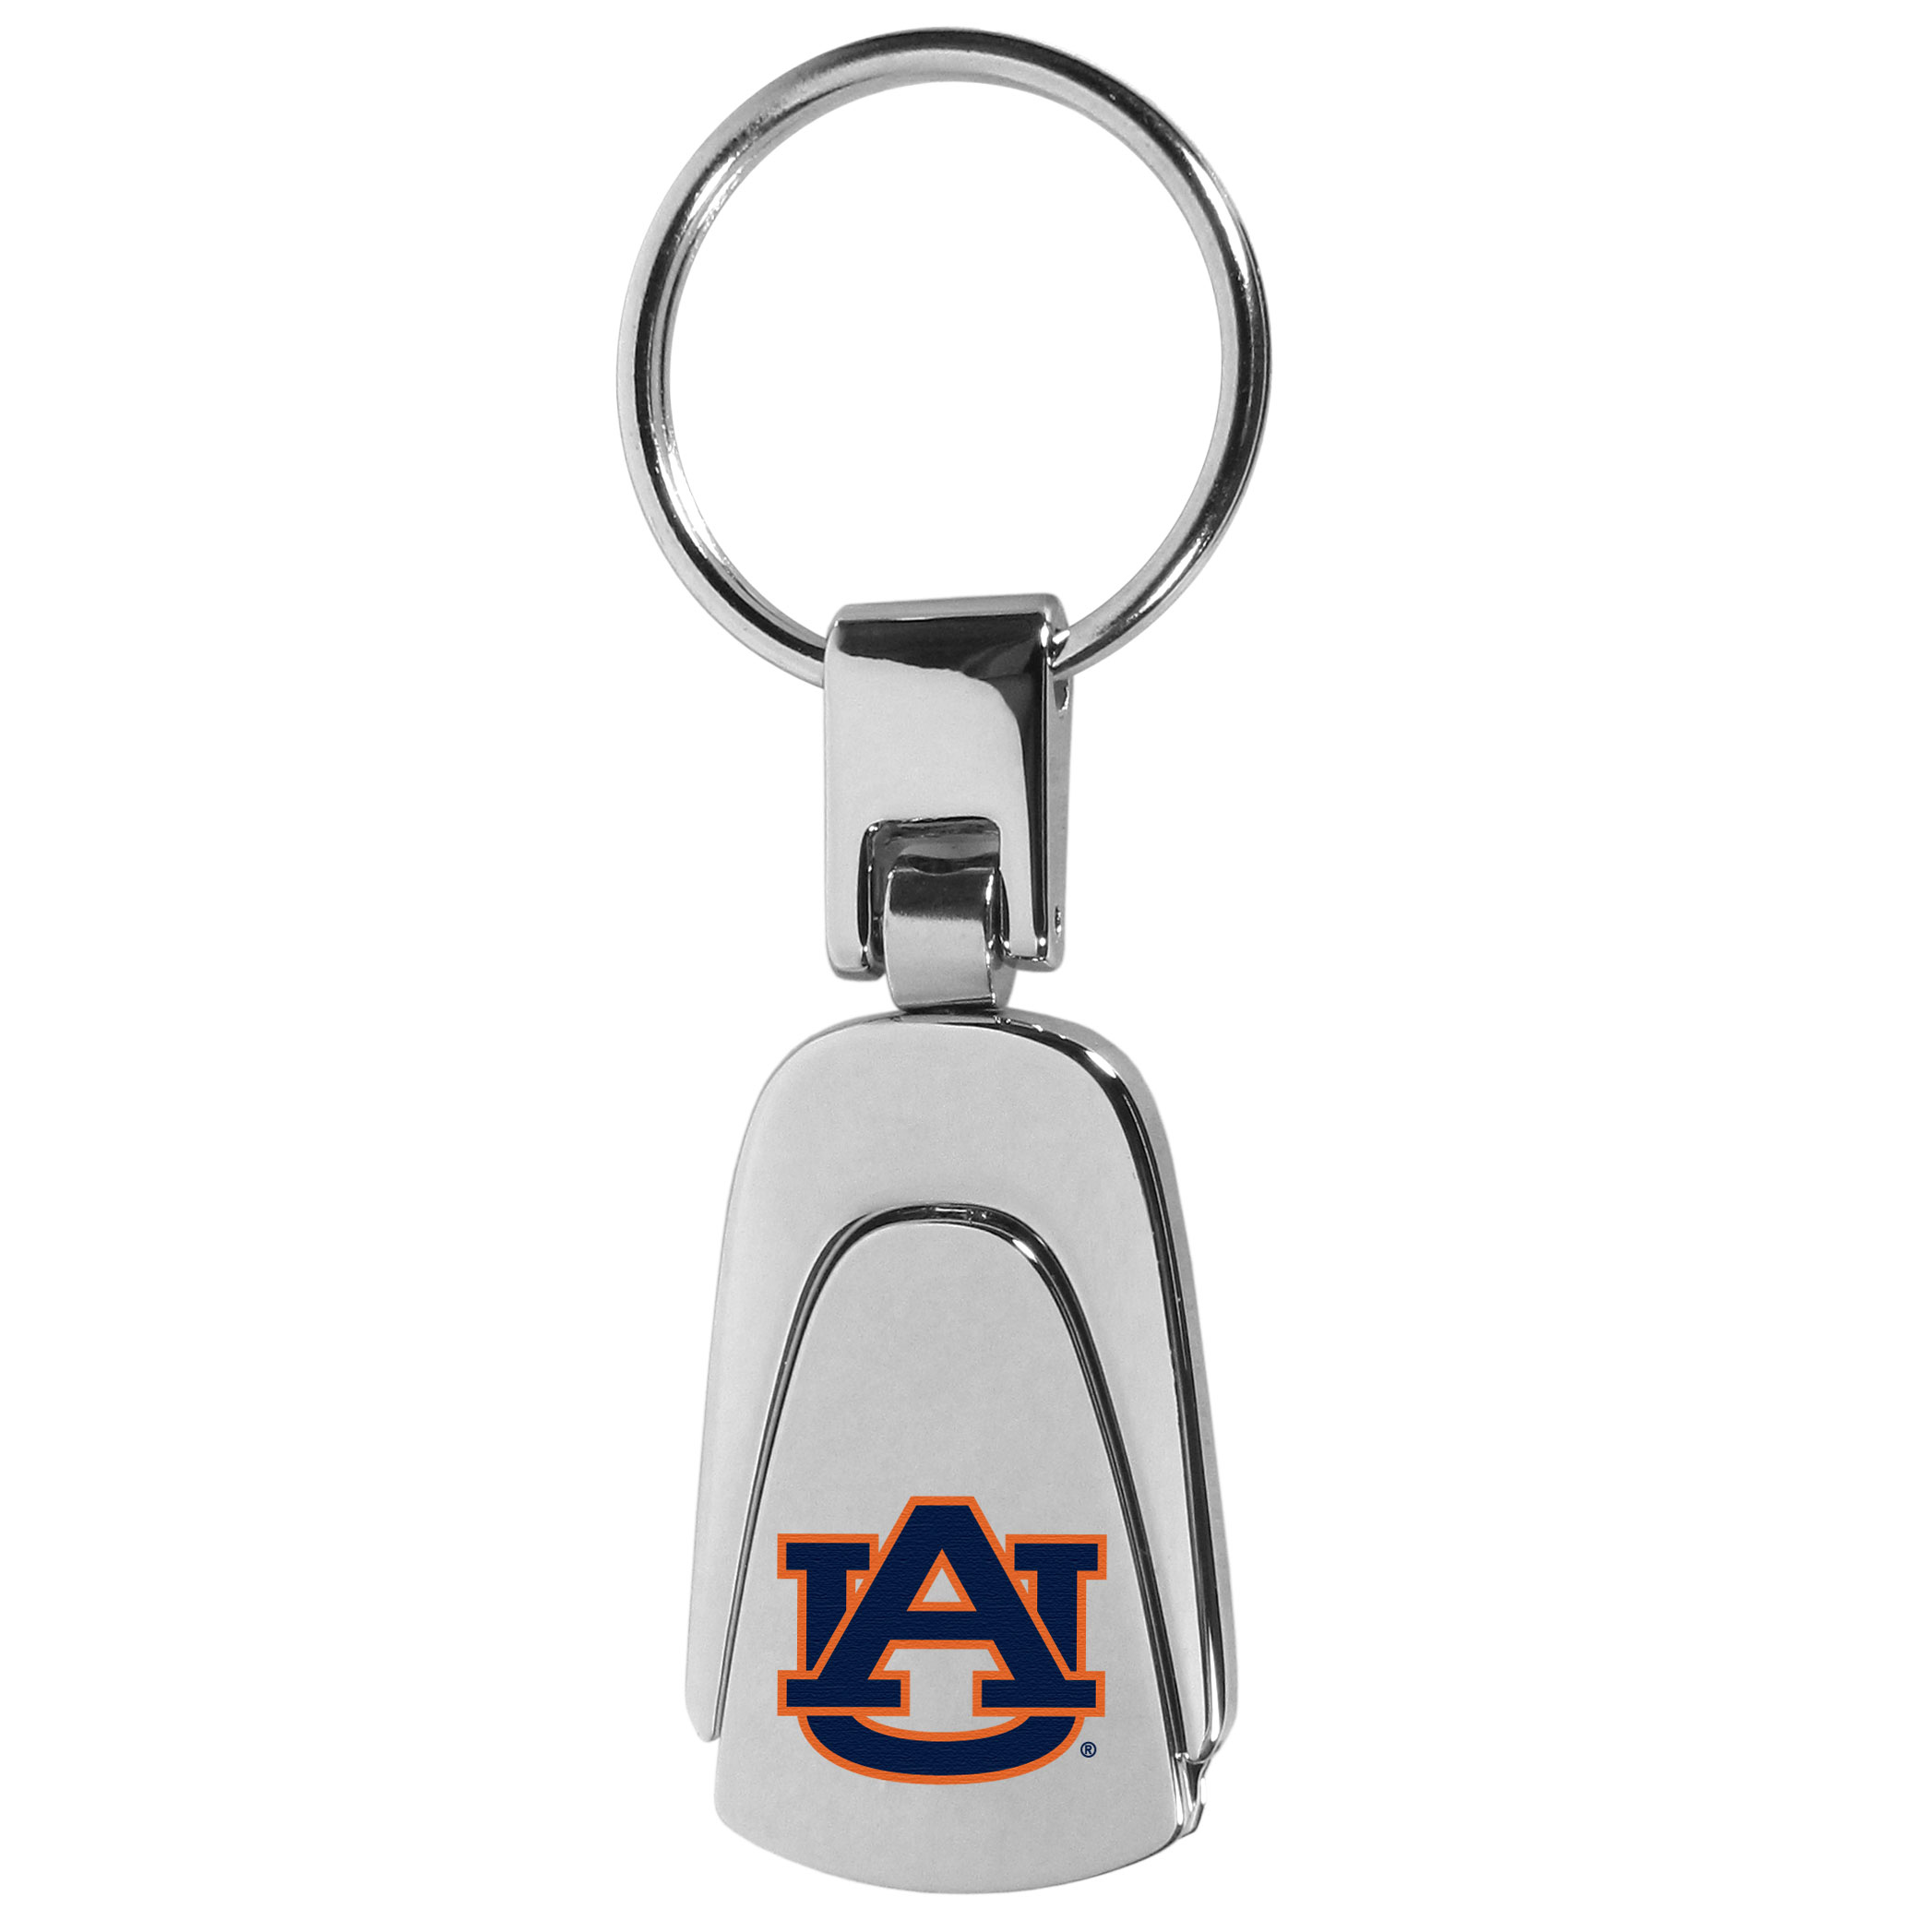 Auburn Tigers Steel Teardop Key Chain - Our Auburn Tigers stainless steel, teardrop key chain is a high-quality key chain with classic style. The key chain a high-polish finish with a full color team logo. A standard split ring for your home and auto keys.